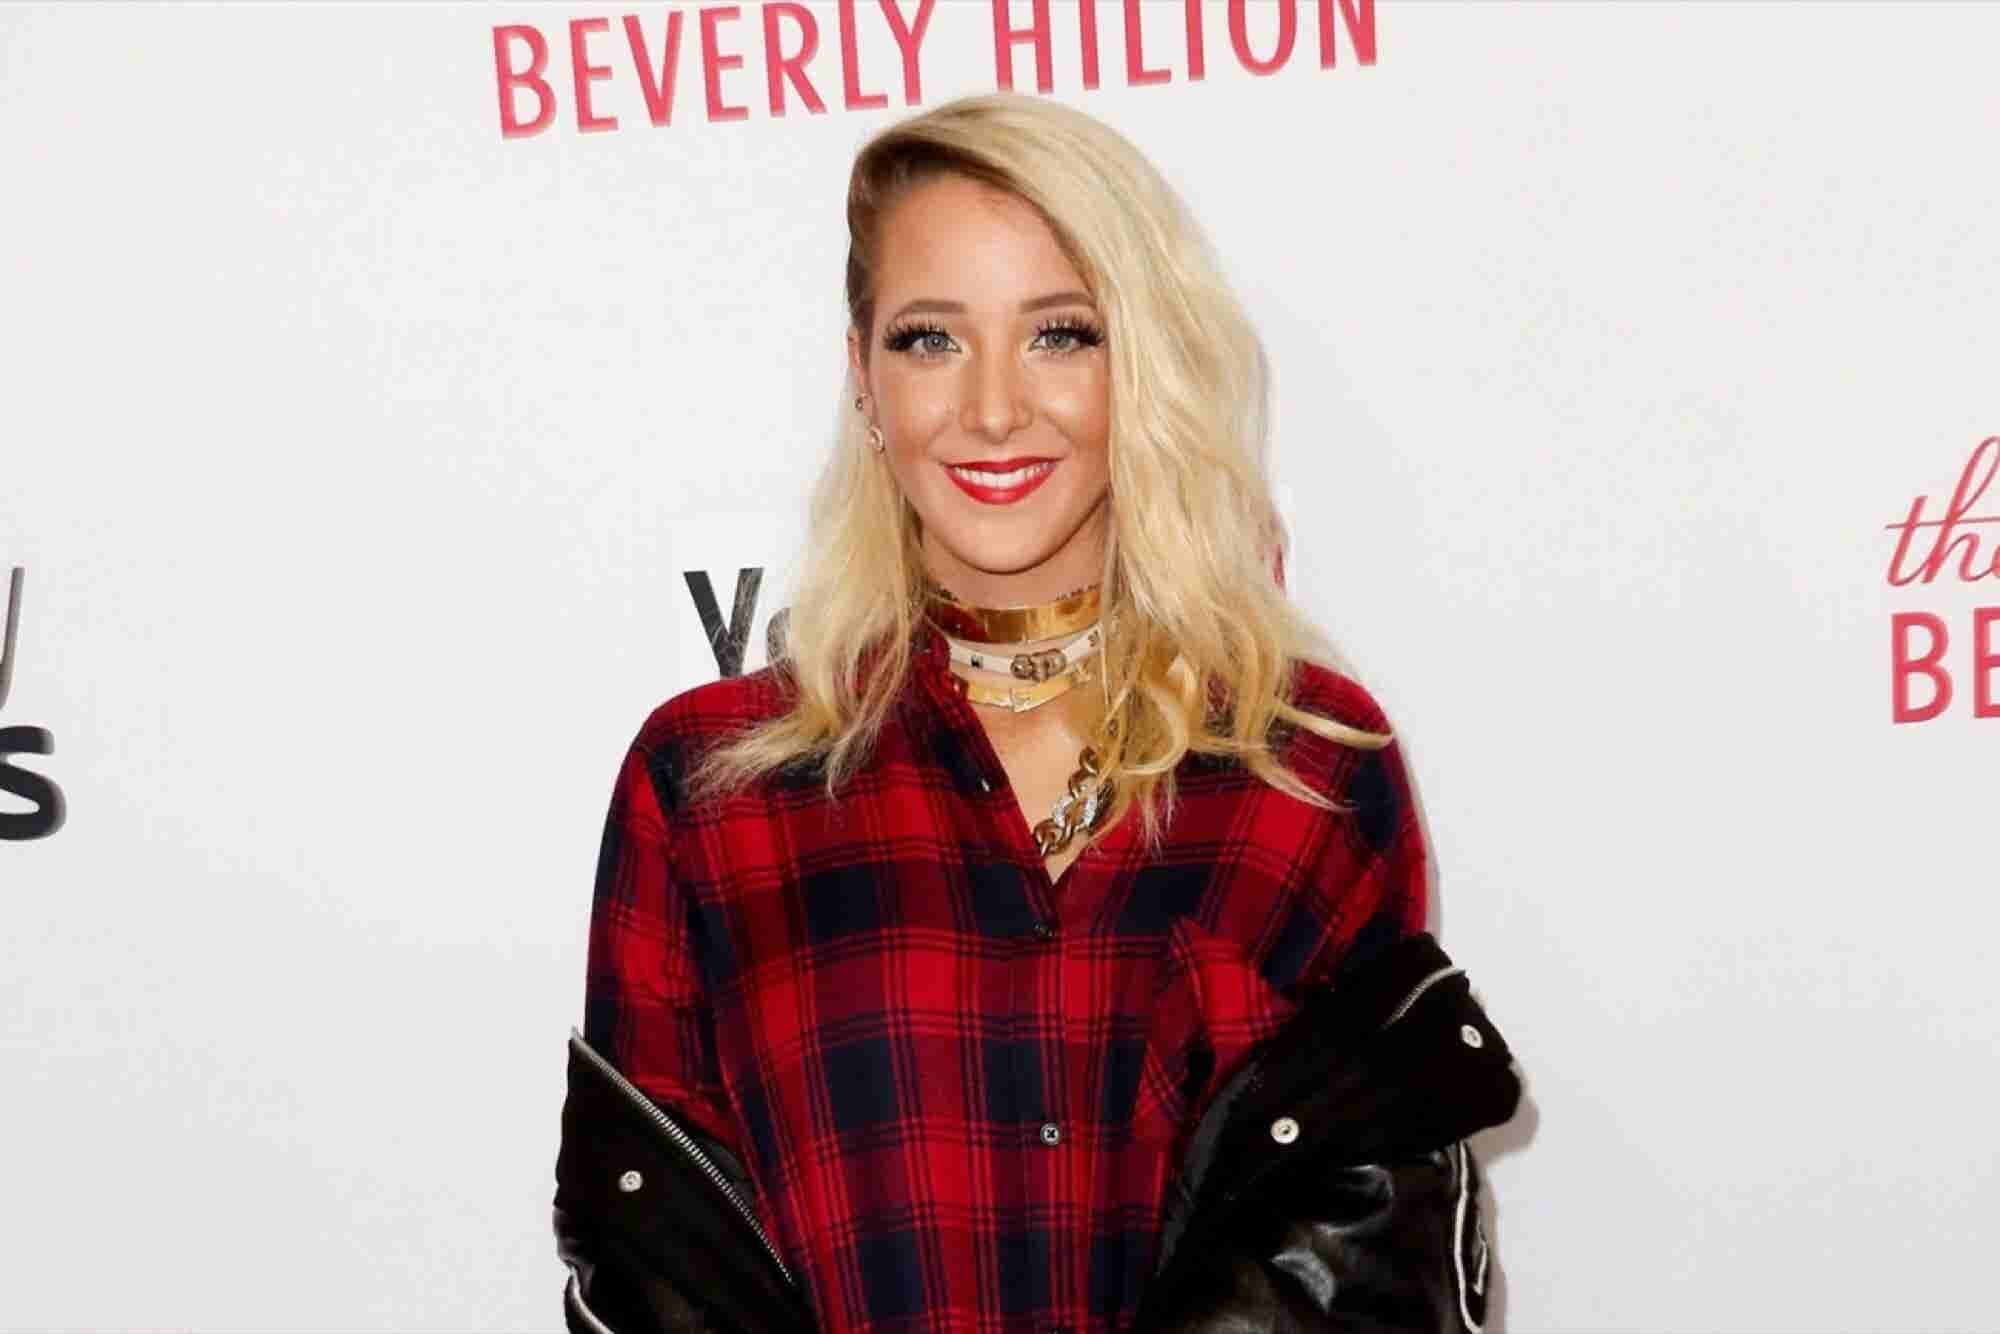 YouTube Superstar Jenna Marbles Reveals the Secrets to Her Success